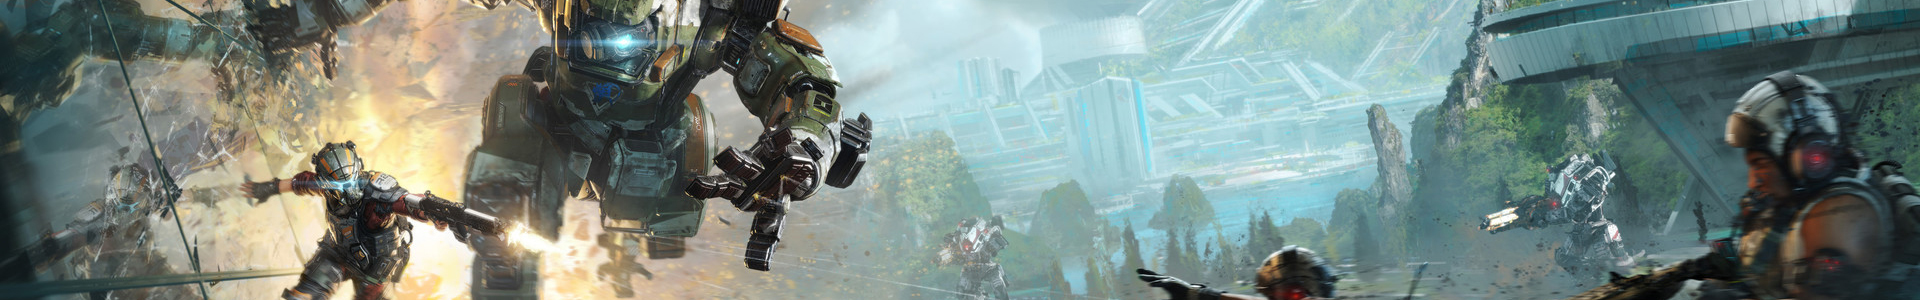 Banner media of Titanfall 2 video game.